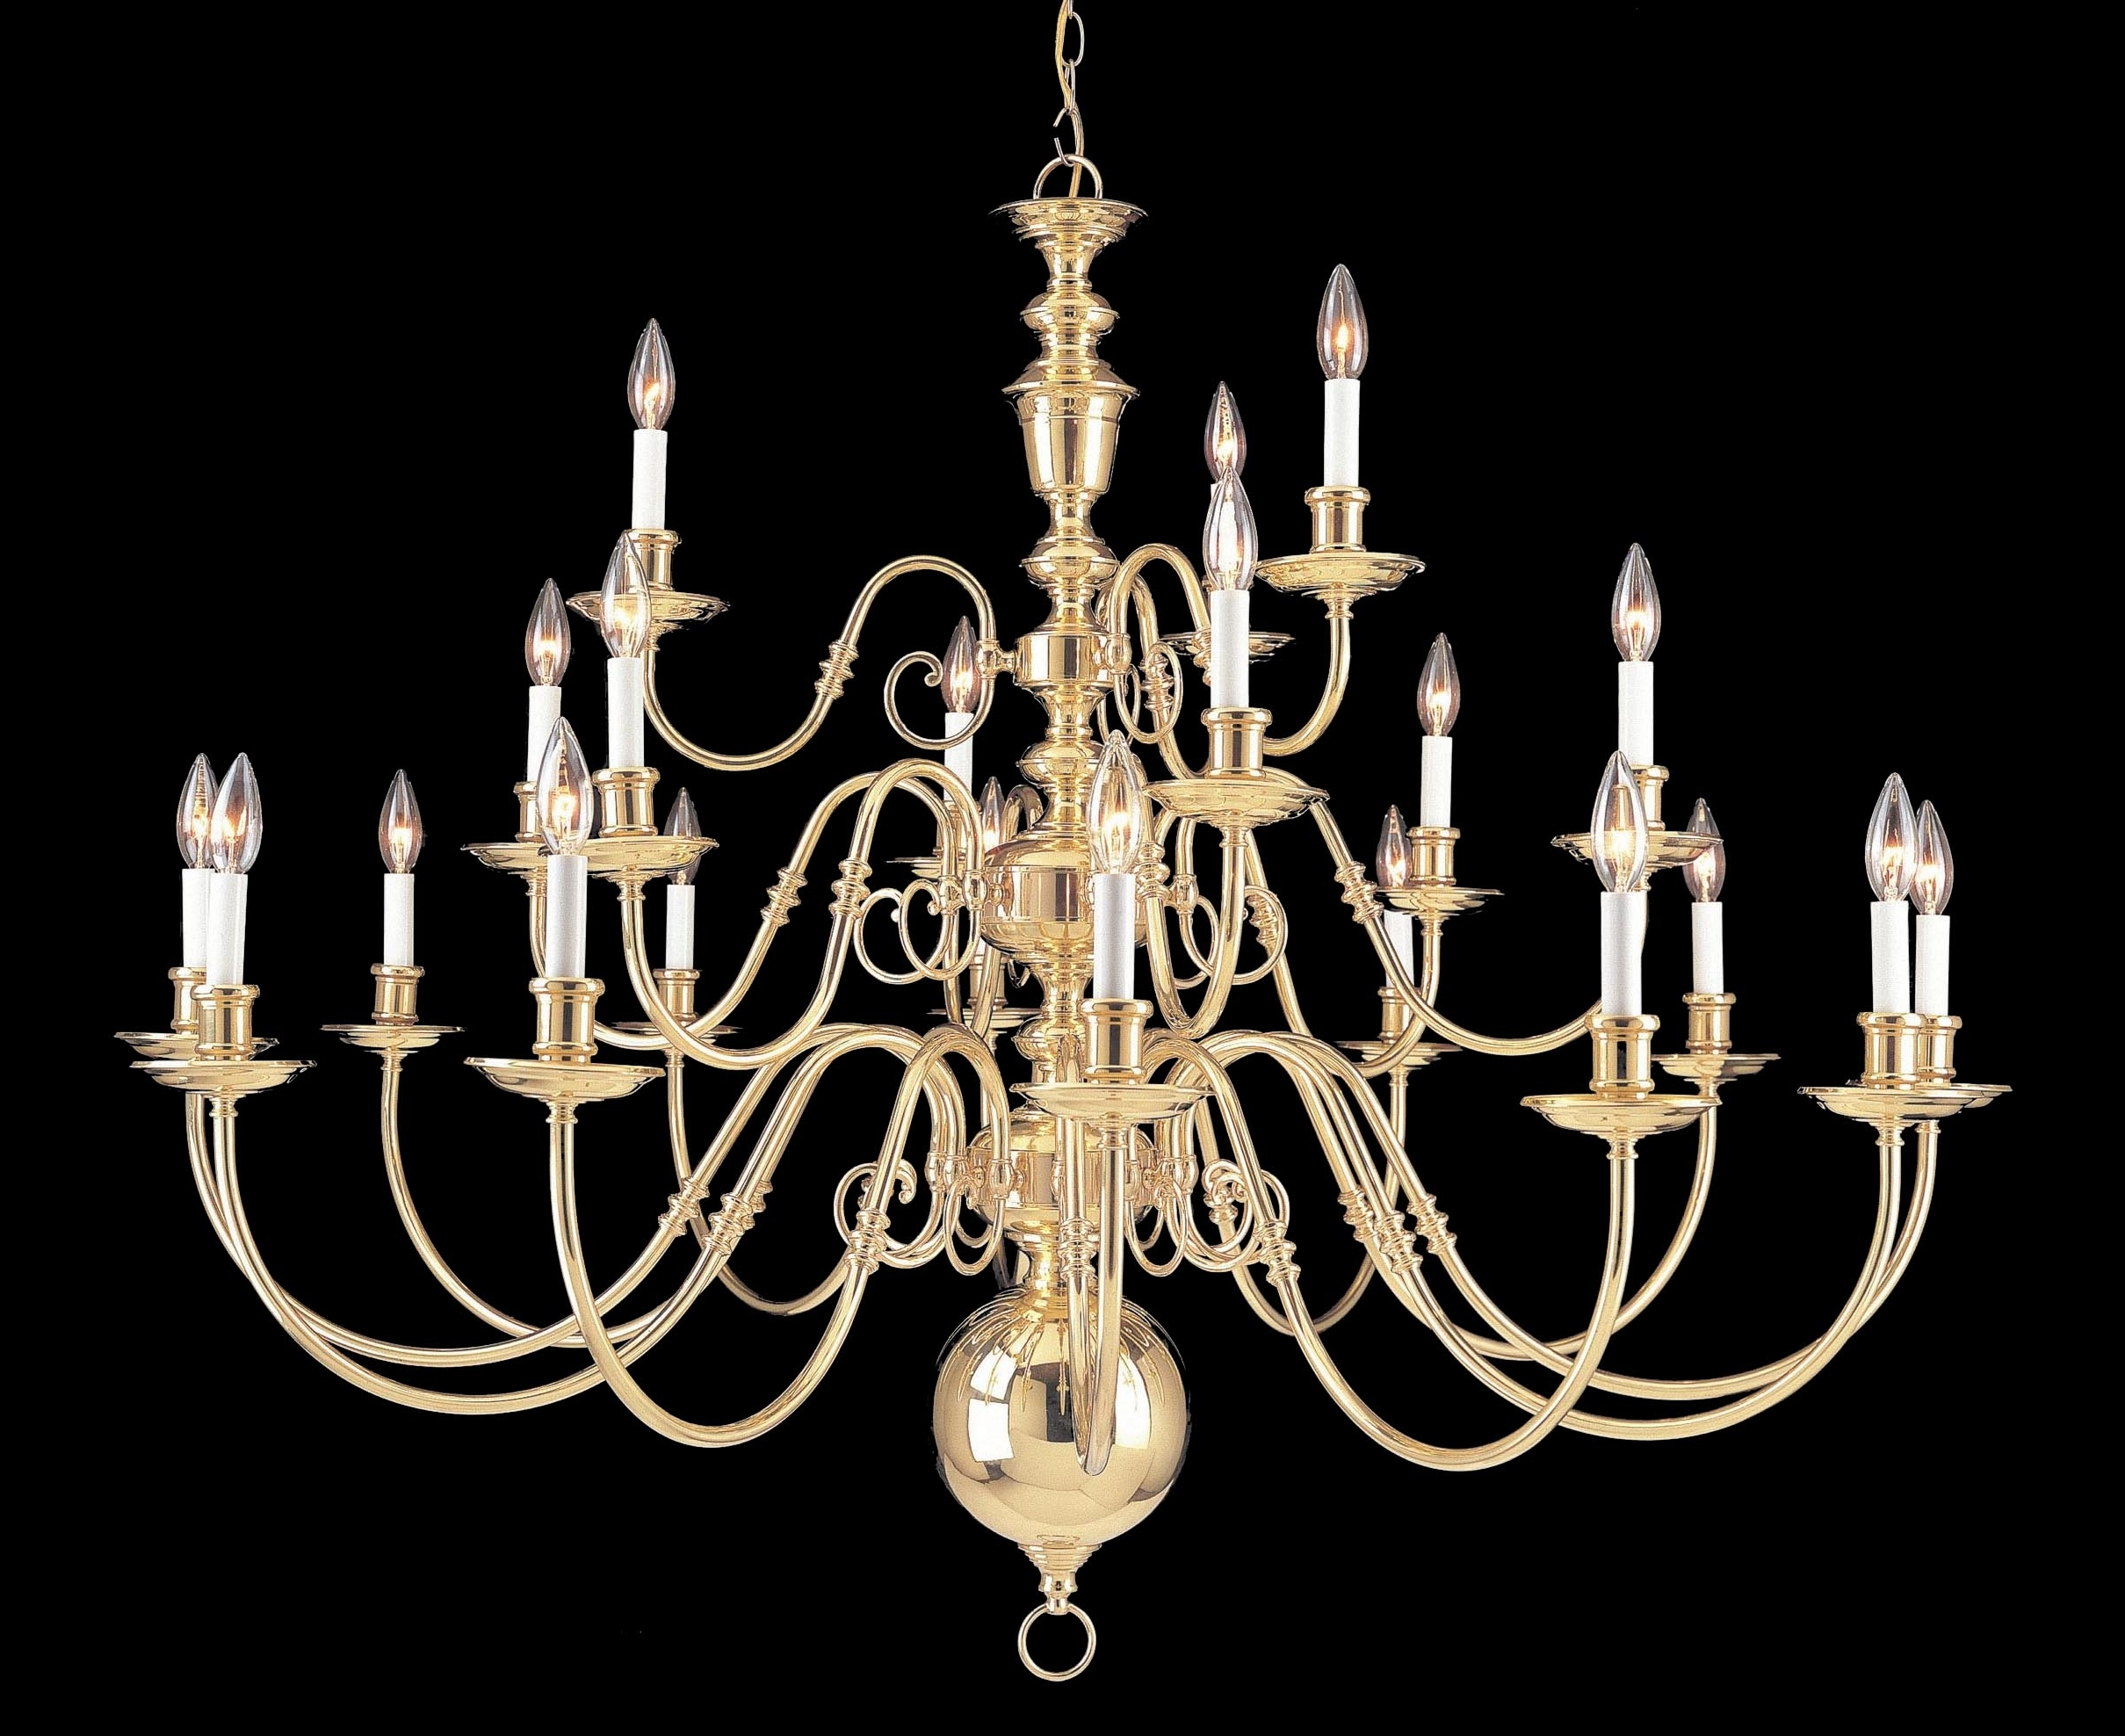 Large Brass Chandelier In 2019 Largelighting – Brass/bronze Chandeliers (View 7 of 20)